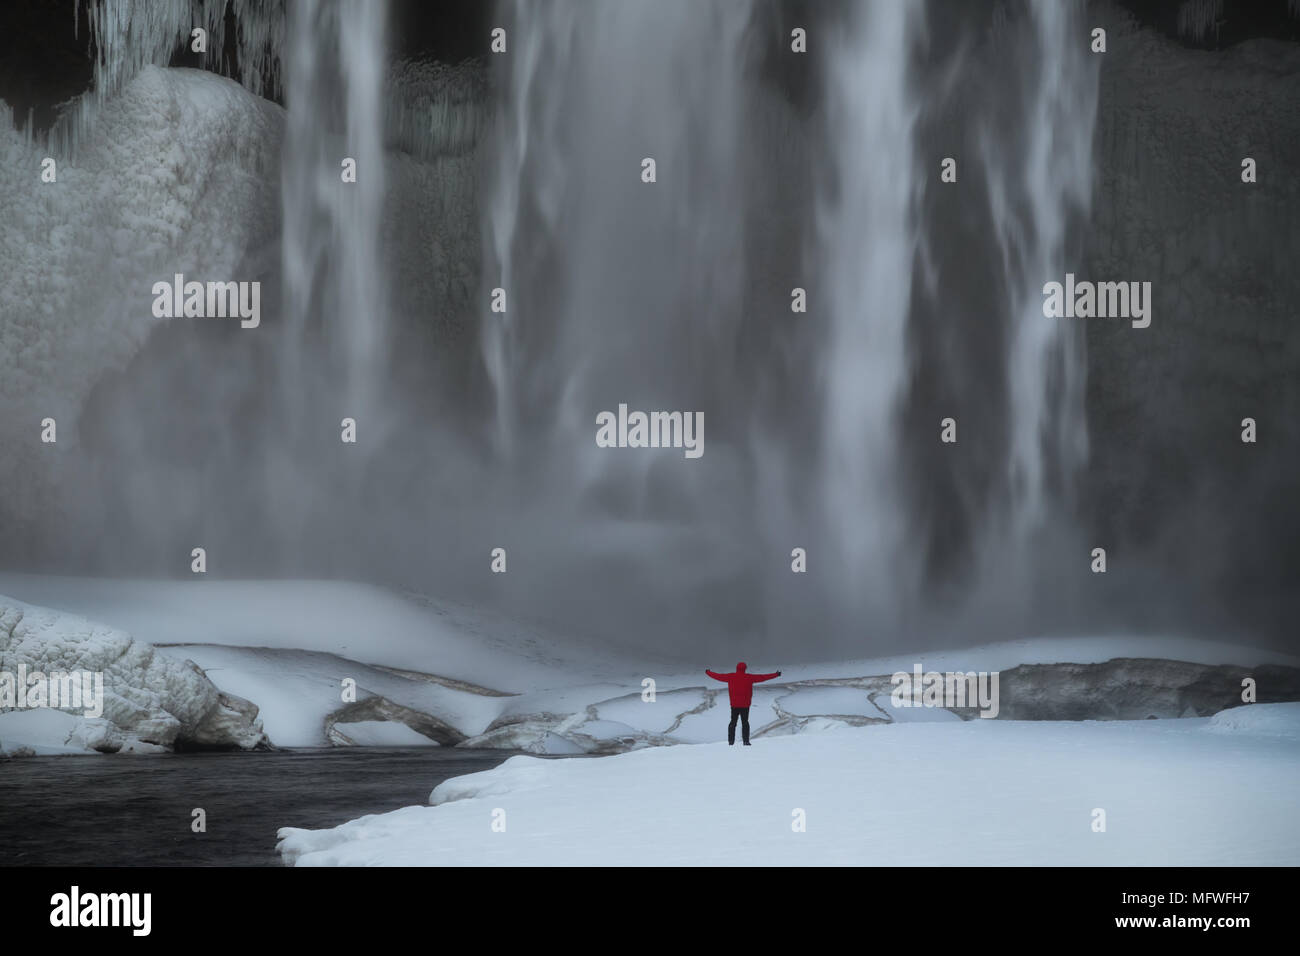 Selfie at Skogafoss waterfall in winter, Iceland - Stock Image